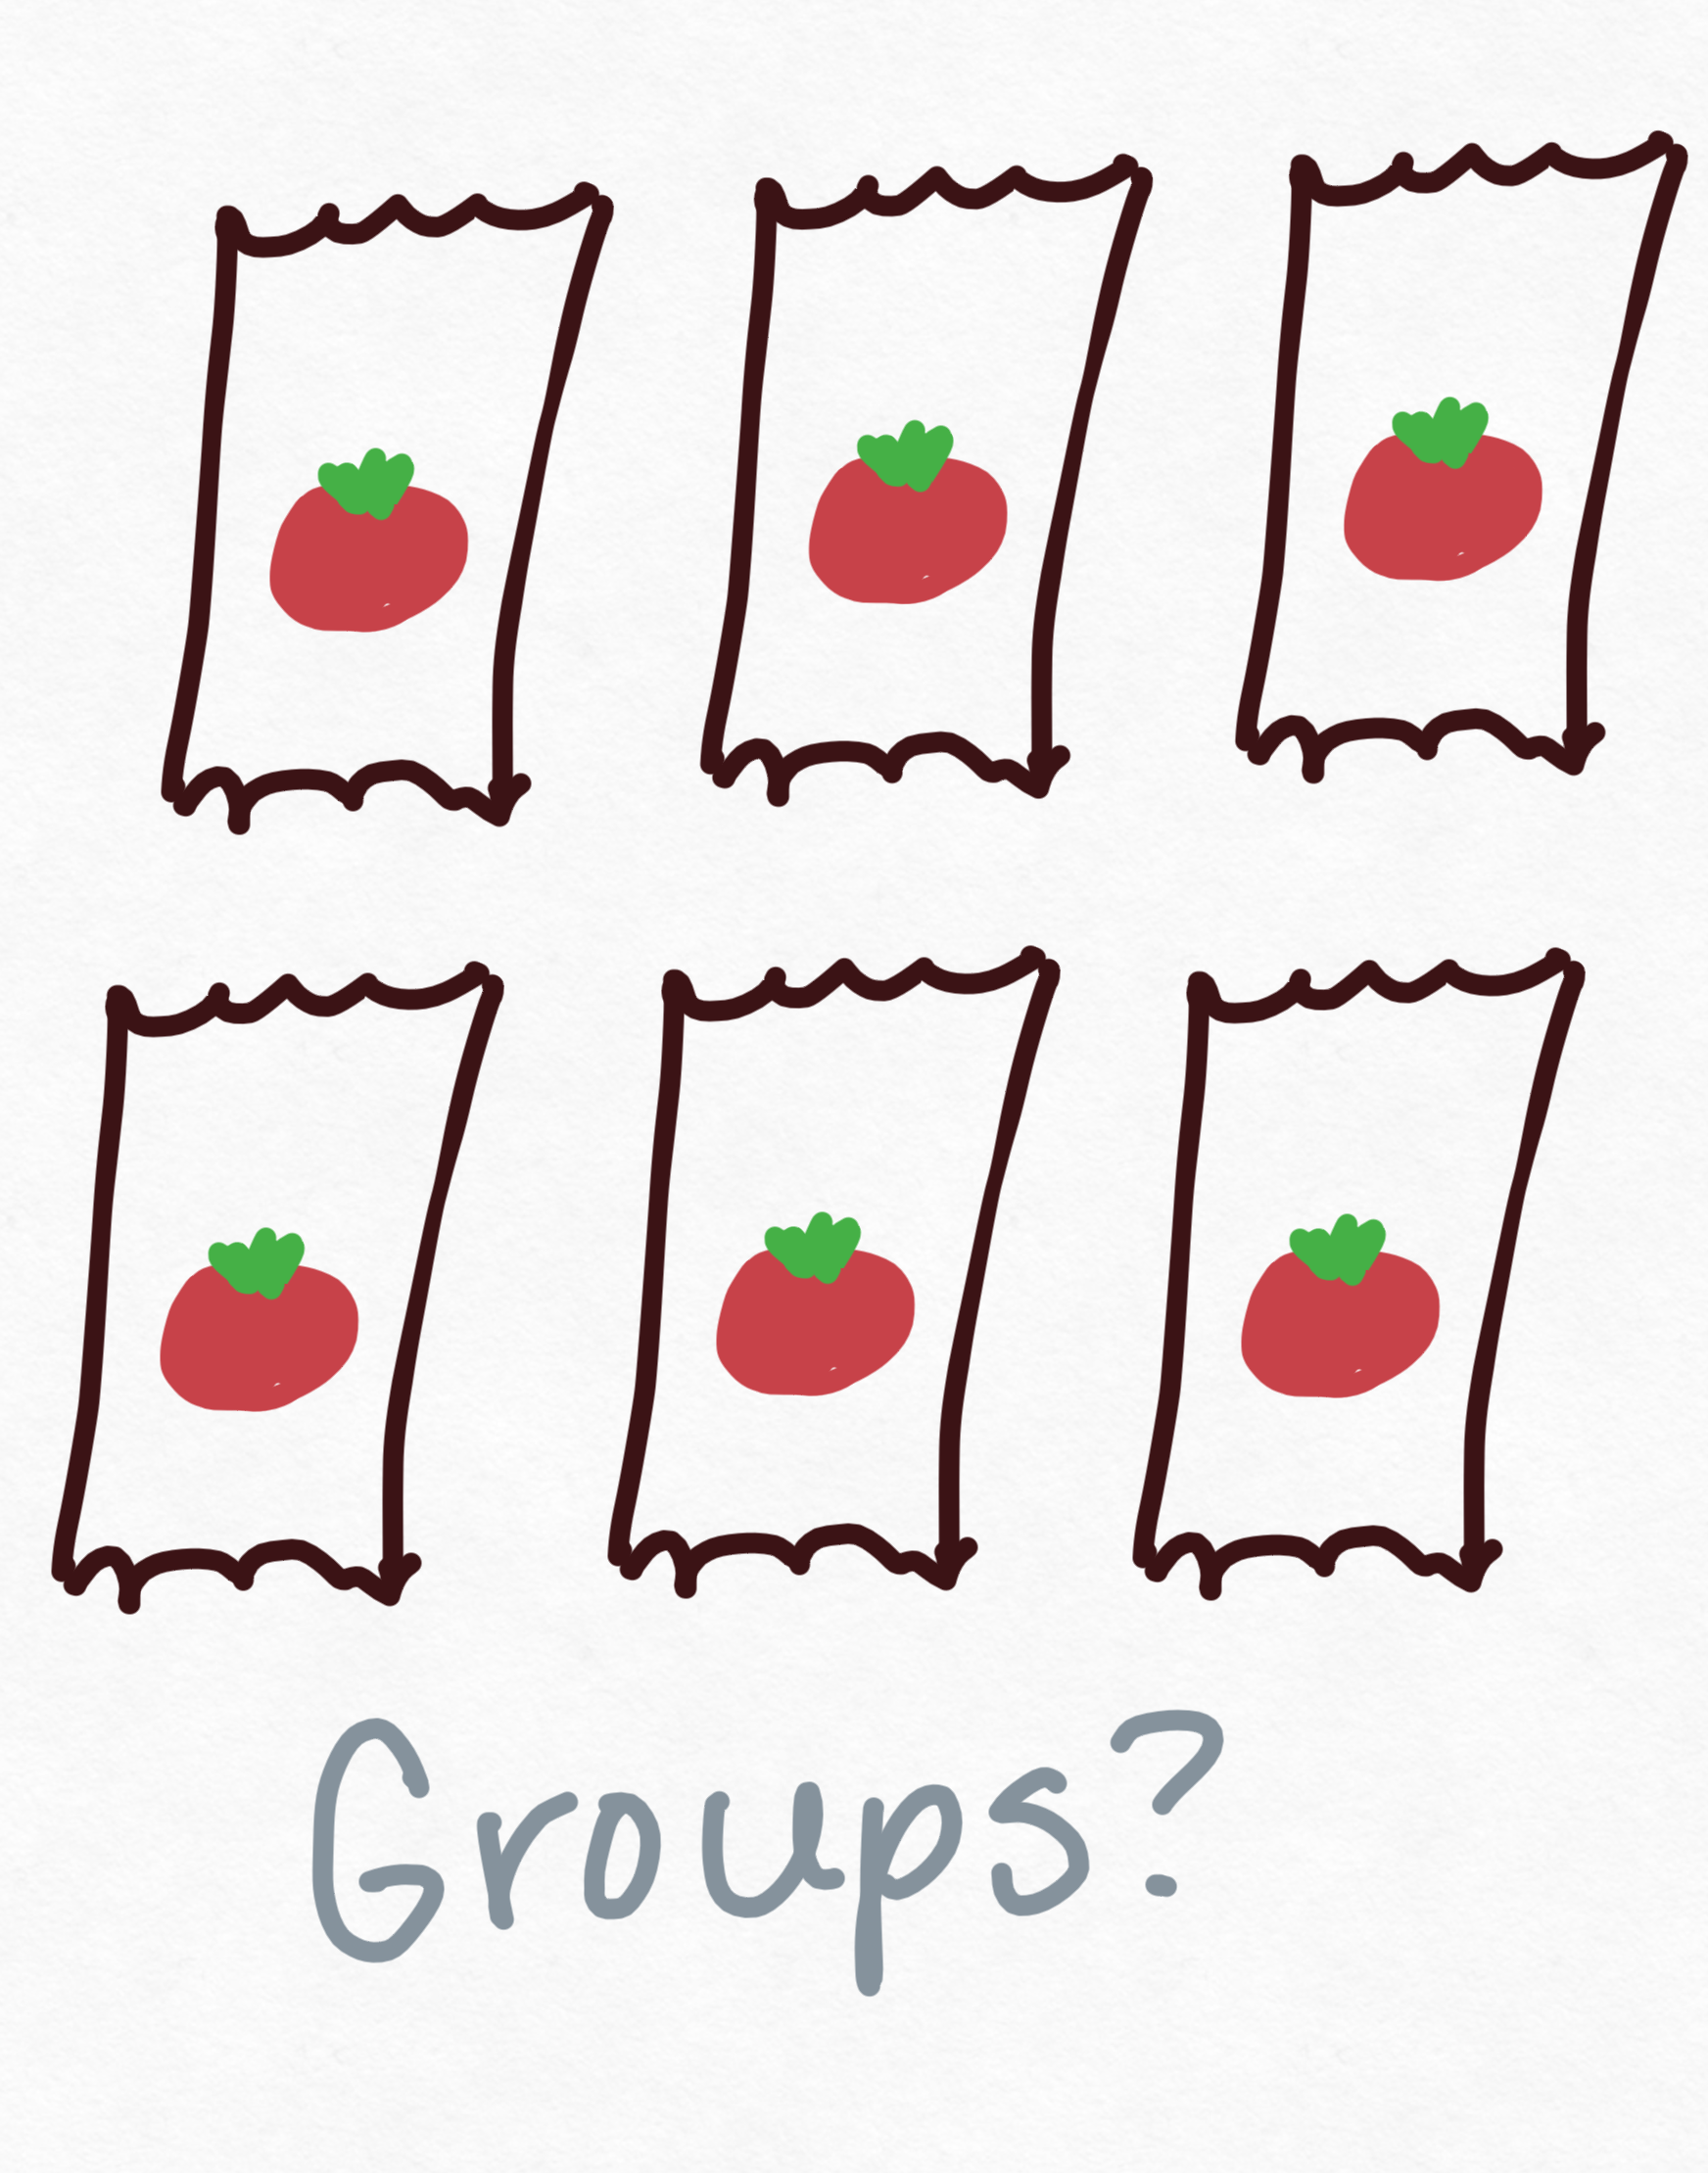 6 cartoon ketchup packets and the word groups? beneath it.